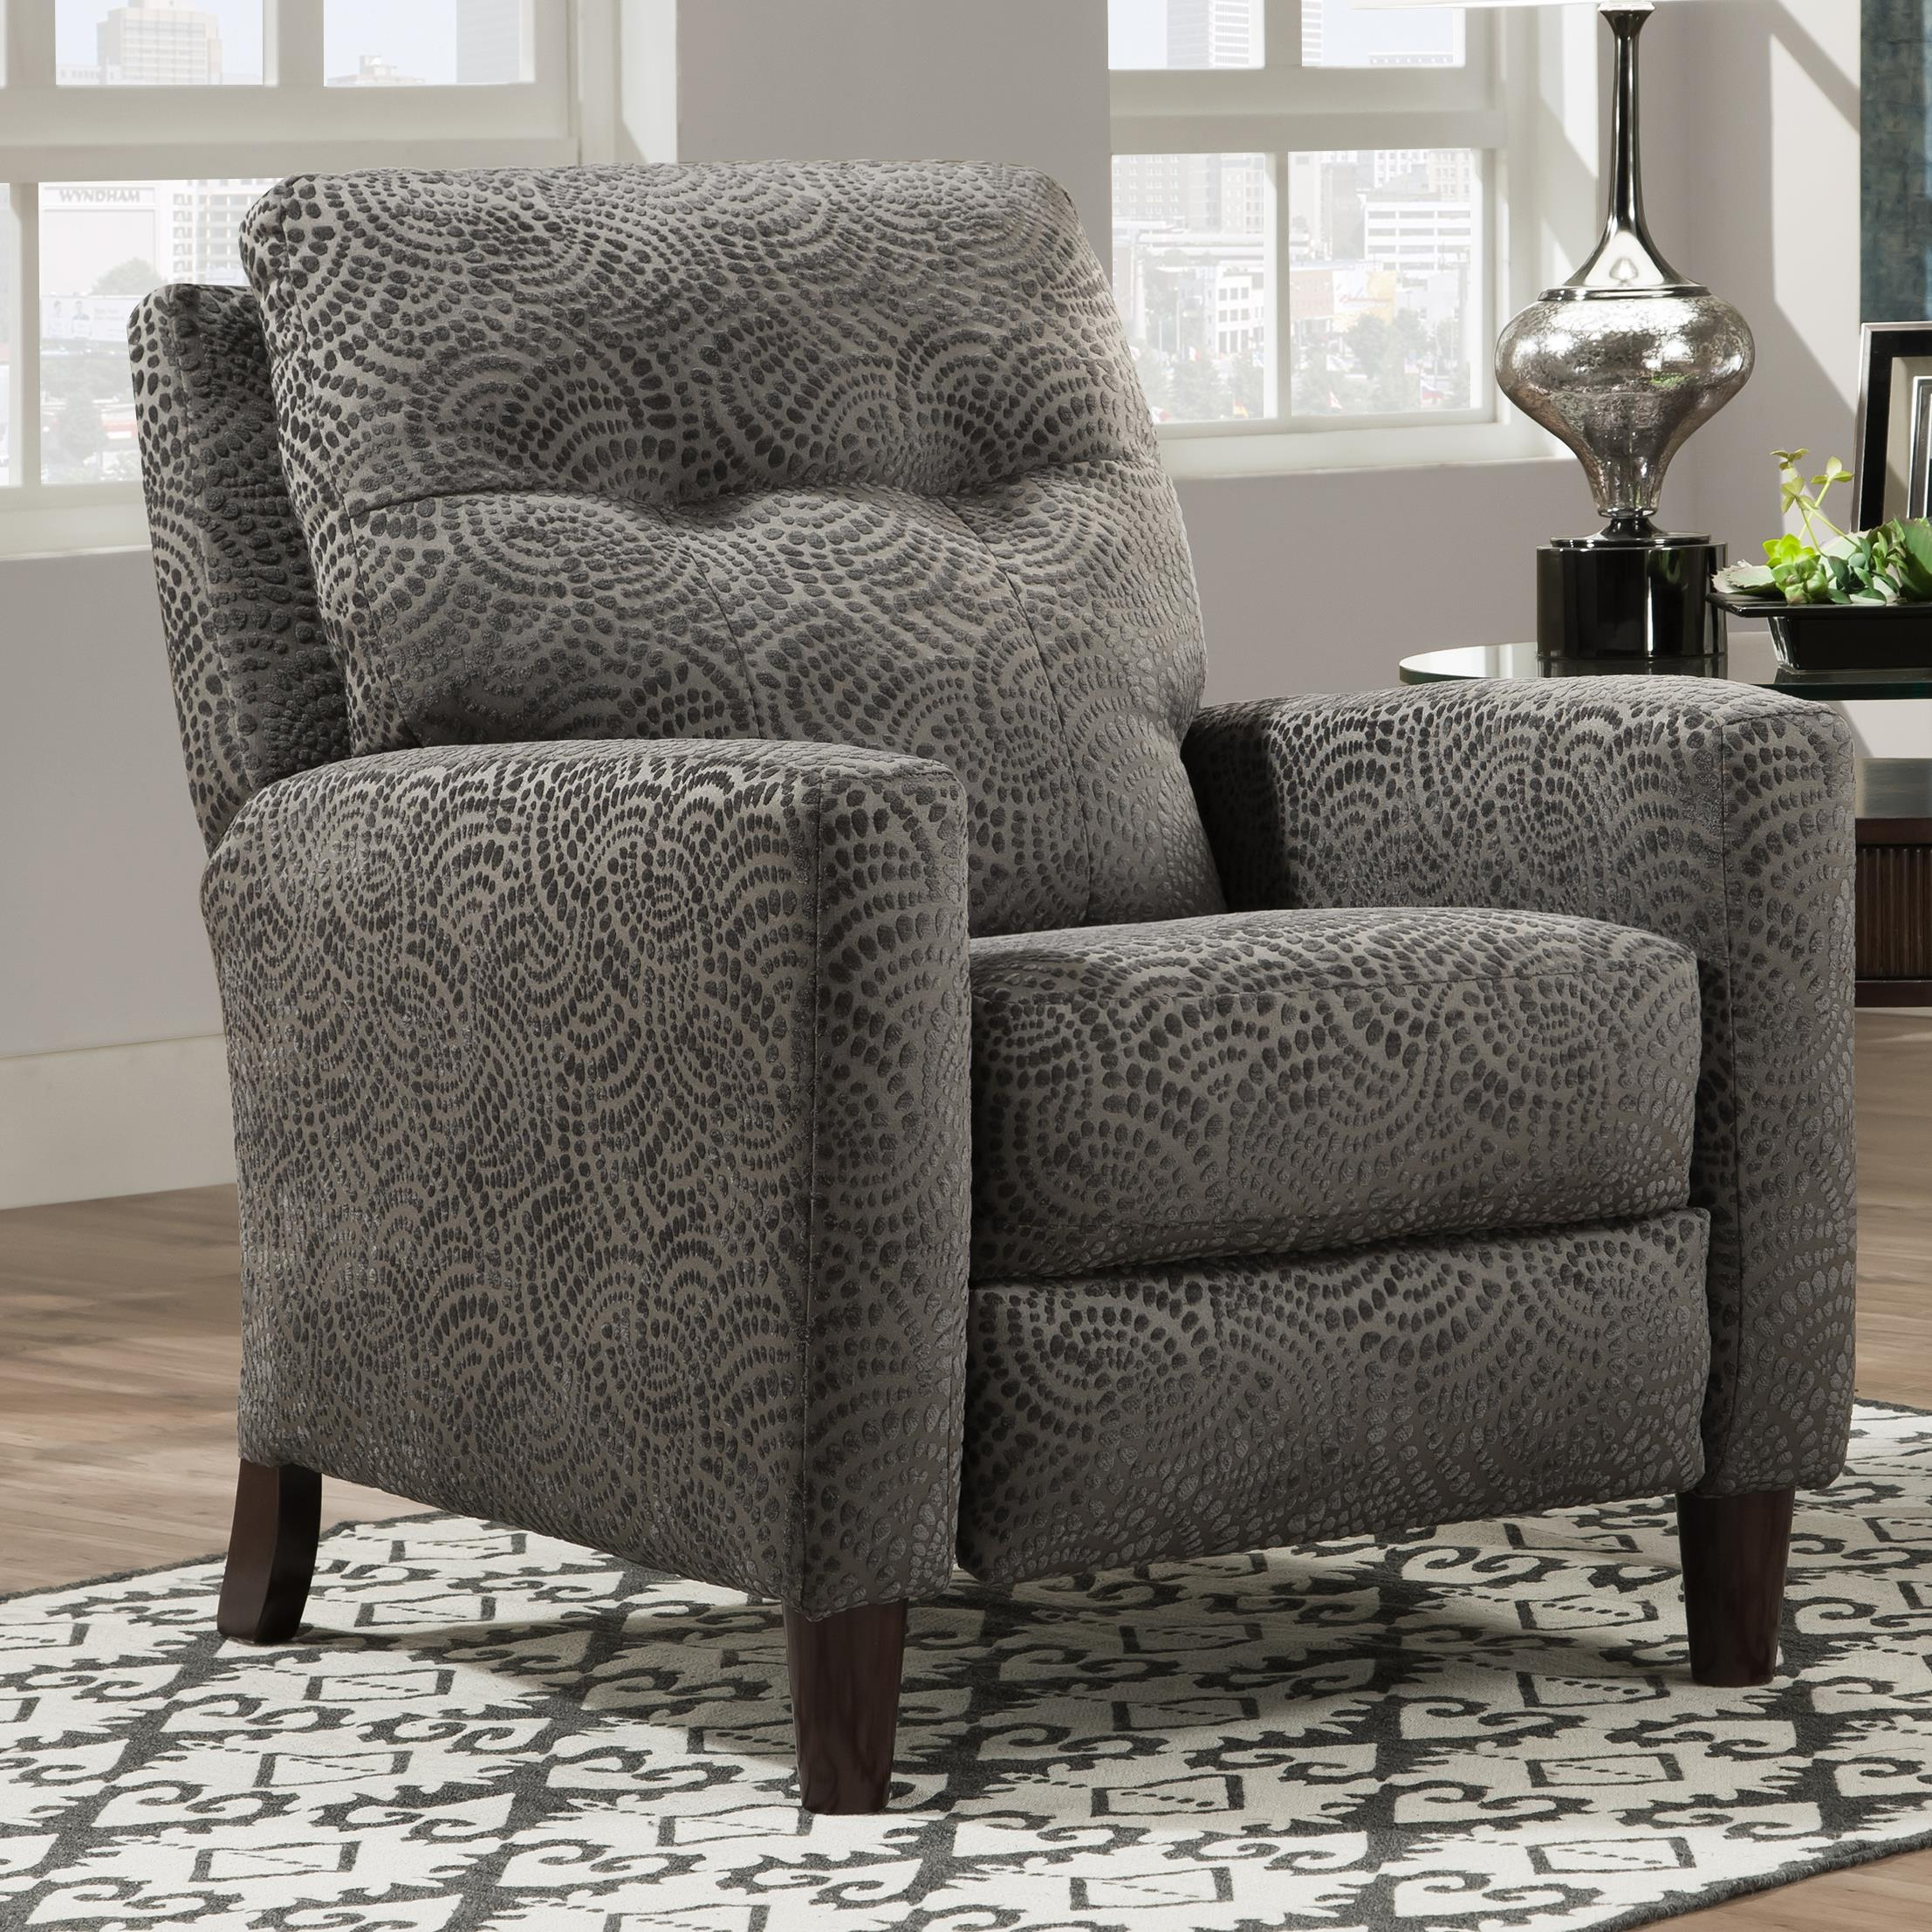 Bella Power High Leg Recliner with USB Port by Southern Motion at Sparks HomeStore